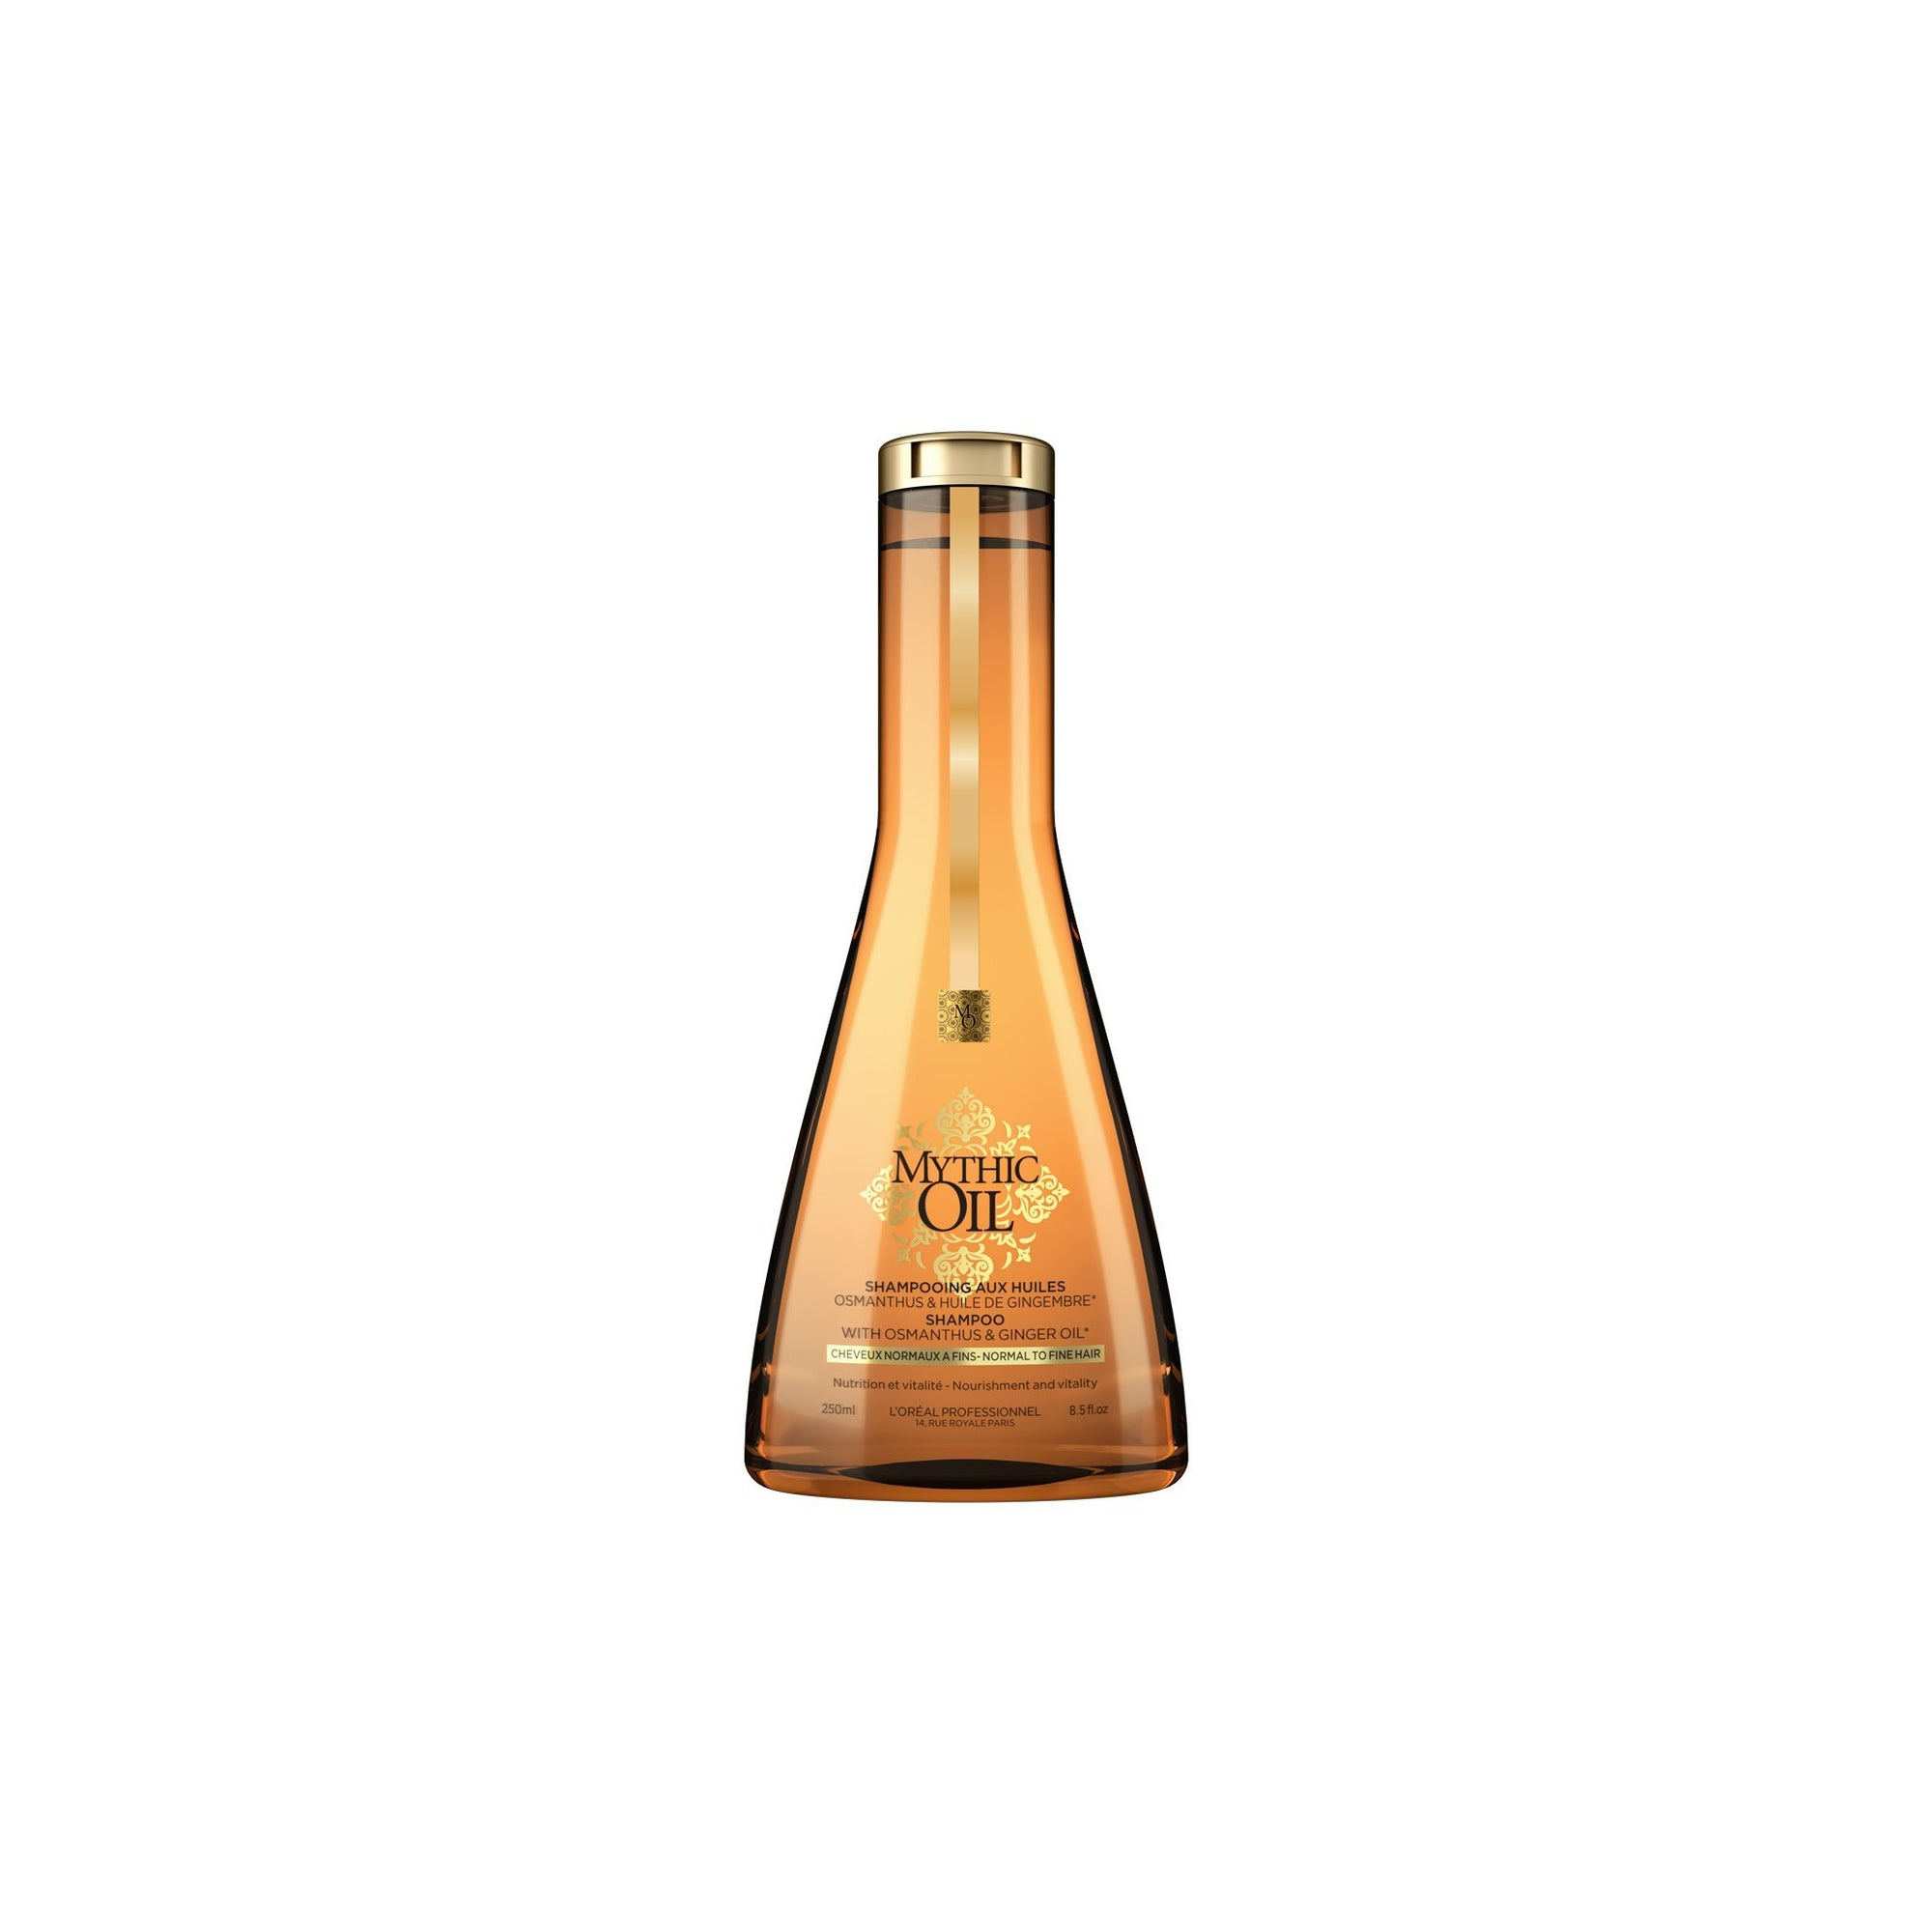 L'Oreal Professional Mythic Oil Shampoo For Normal To Fine Hair 250ml